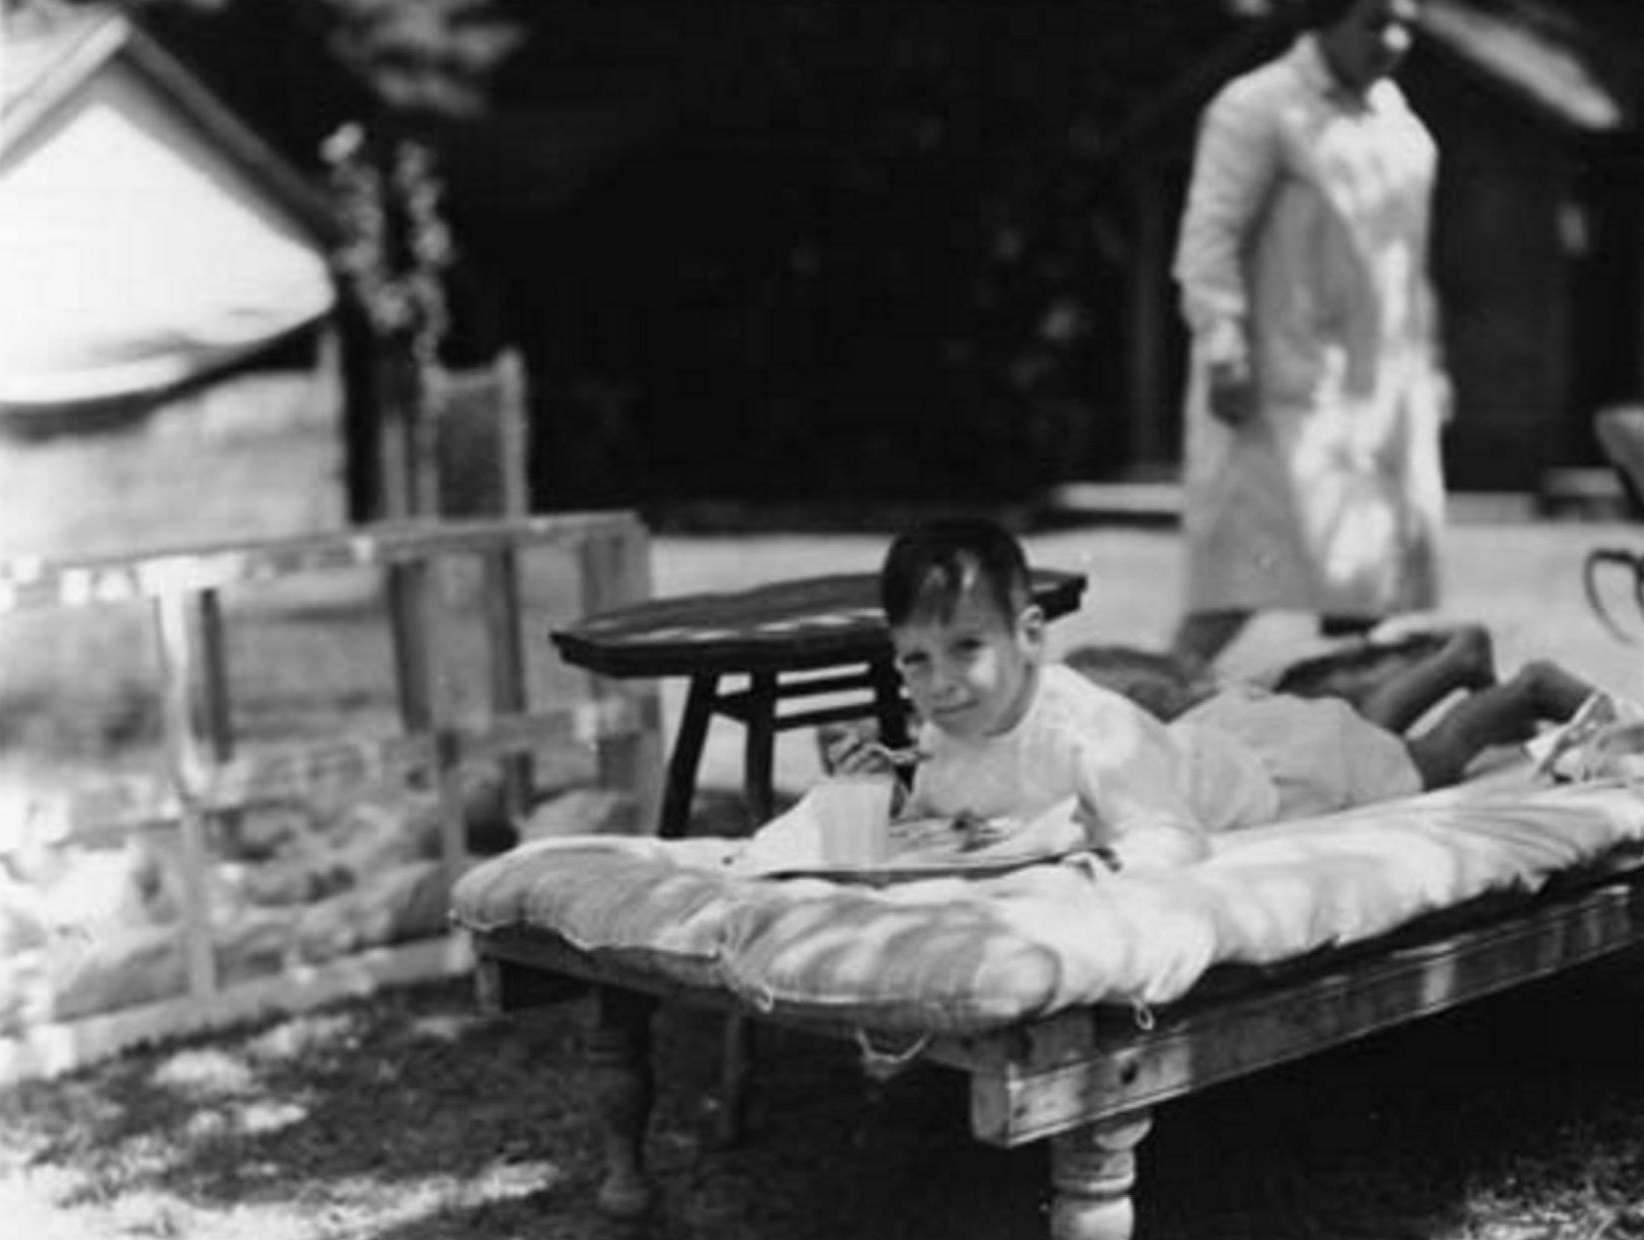 1915-c-Tollendale-Allandale-The gables Summer Camp-...a fresh air patient eating his dinner at 'The Gables Camp'-located off Tollendale Rd (1)